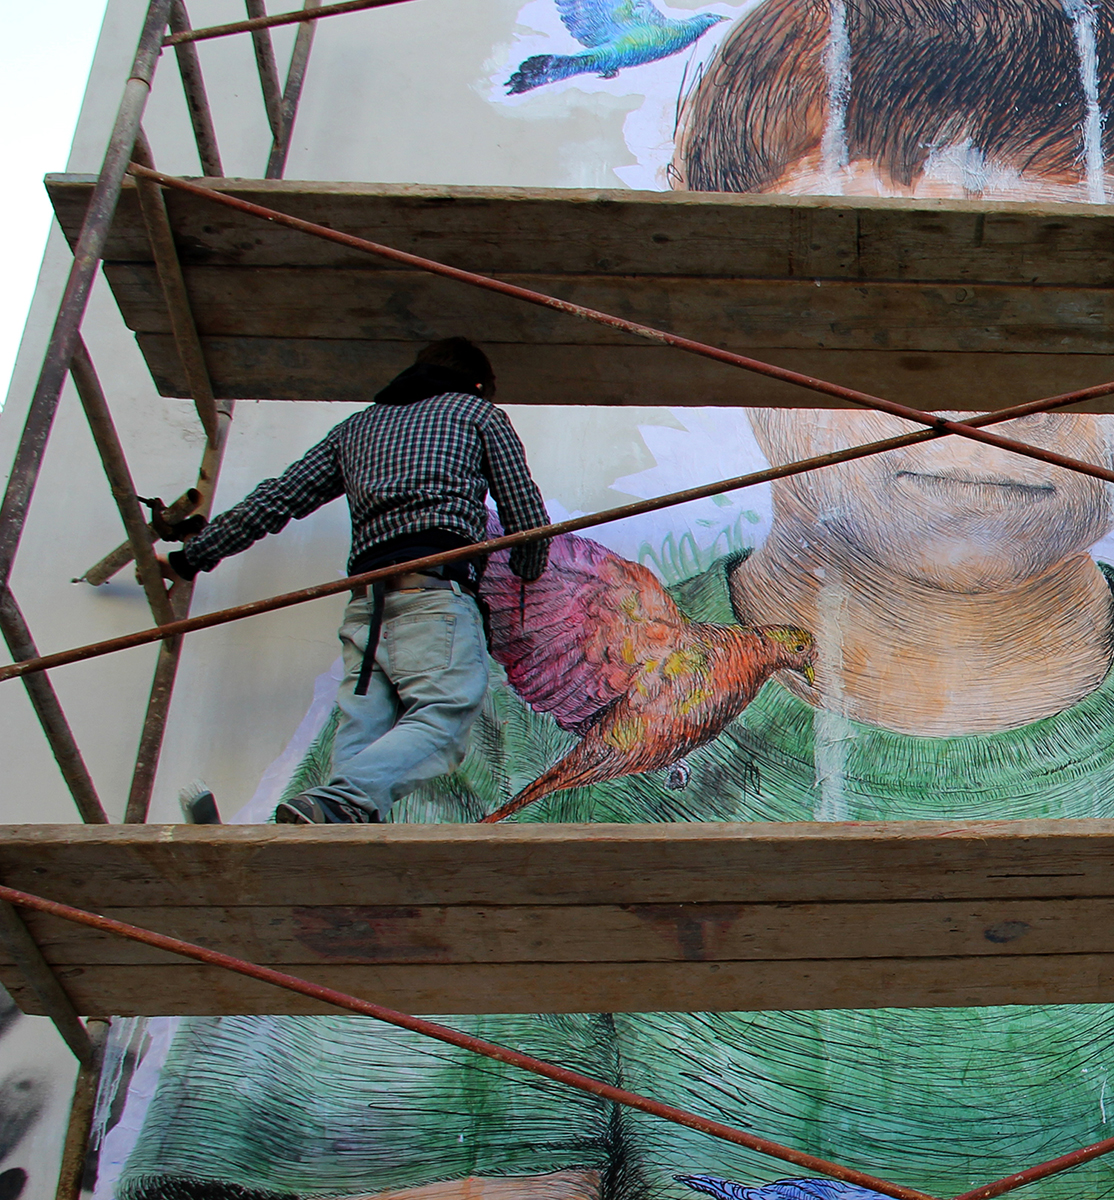 stmts-amity-new-mural-in-athens-02